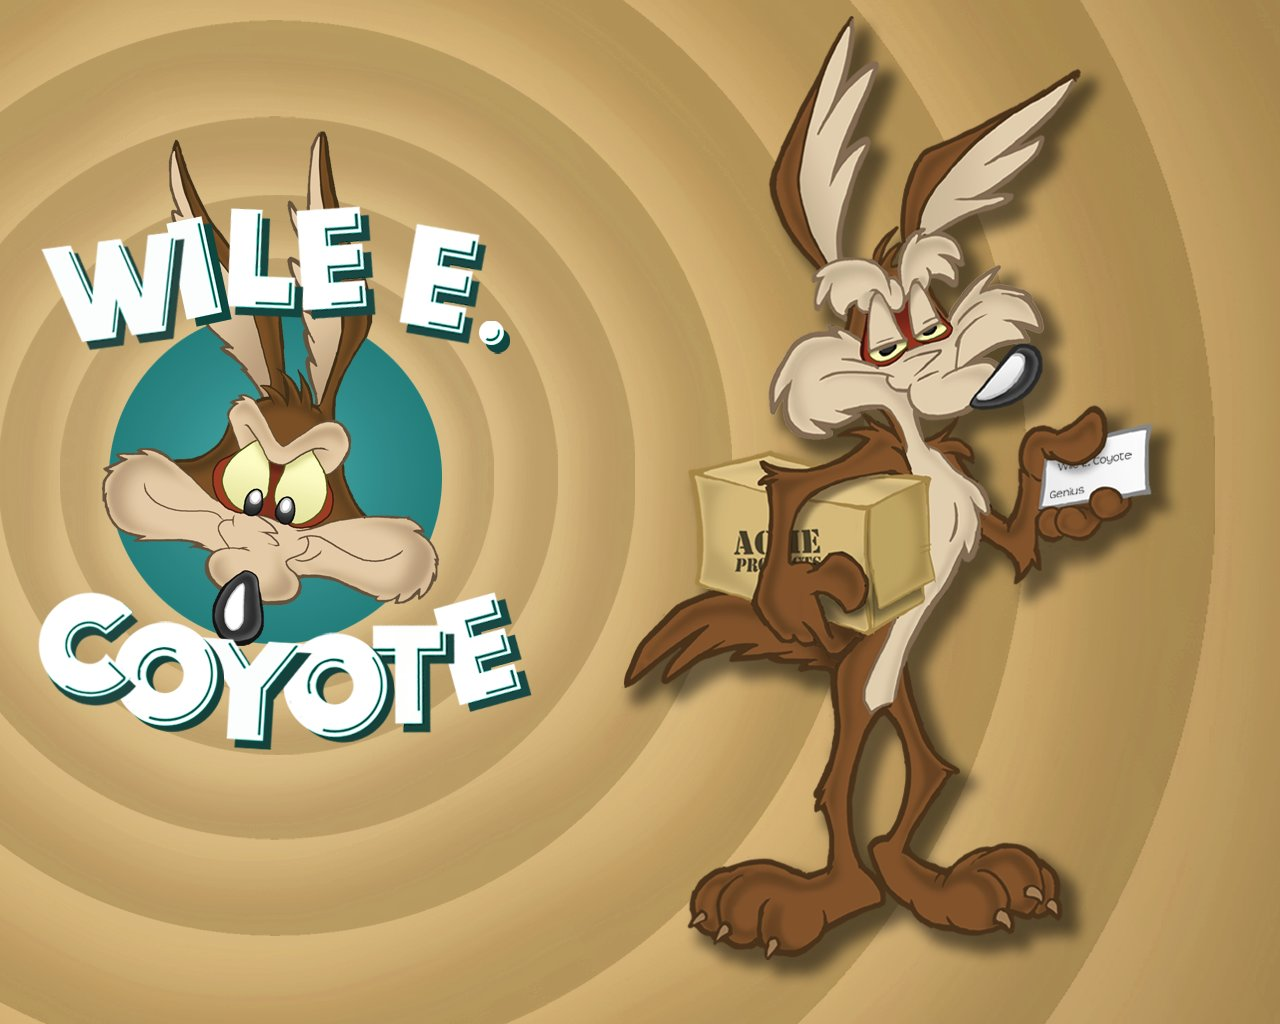 Wile E Coyote wallpapers 1280x1024 desktop backgrounds